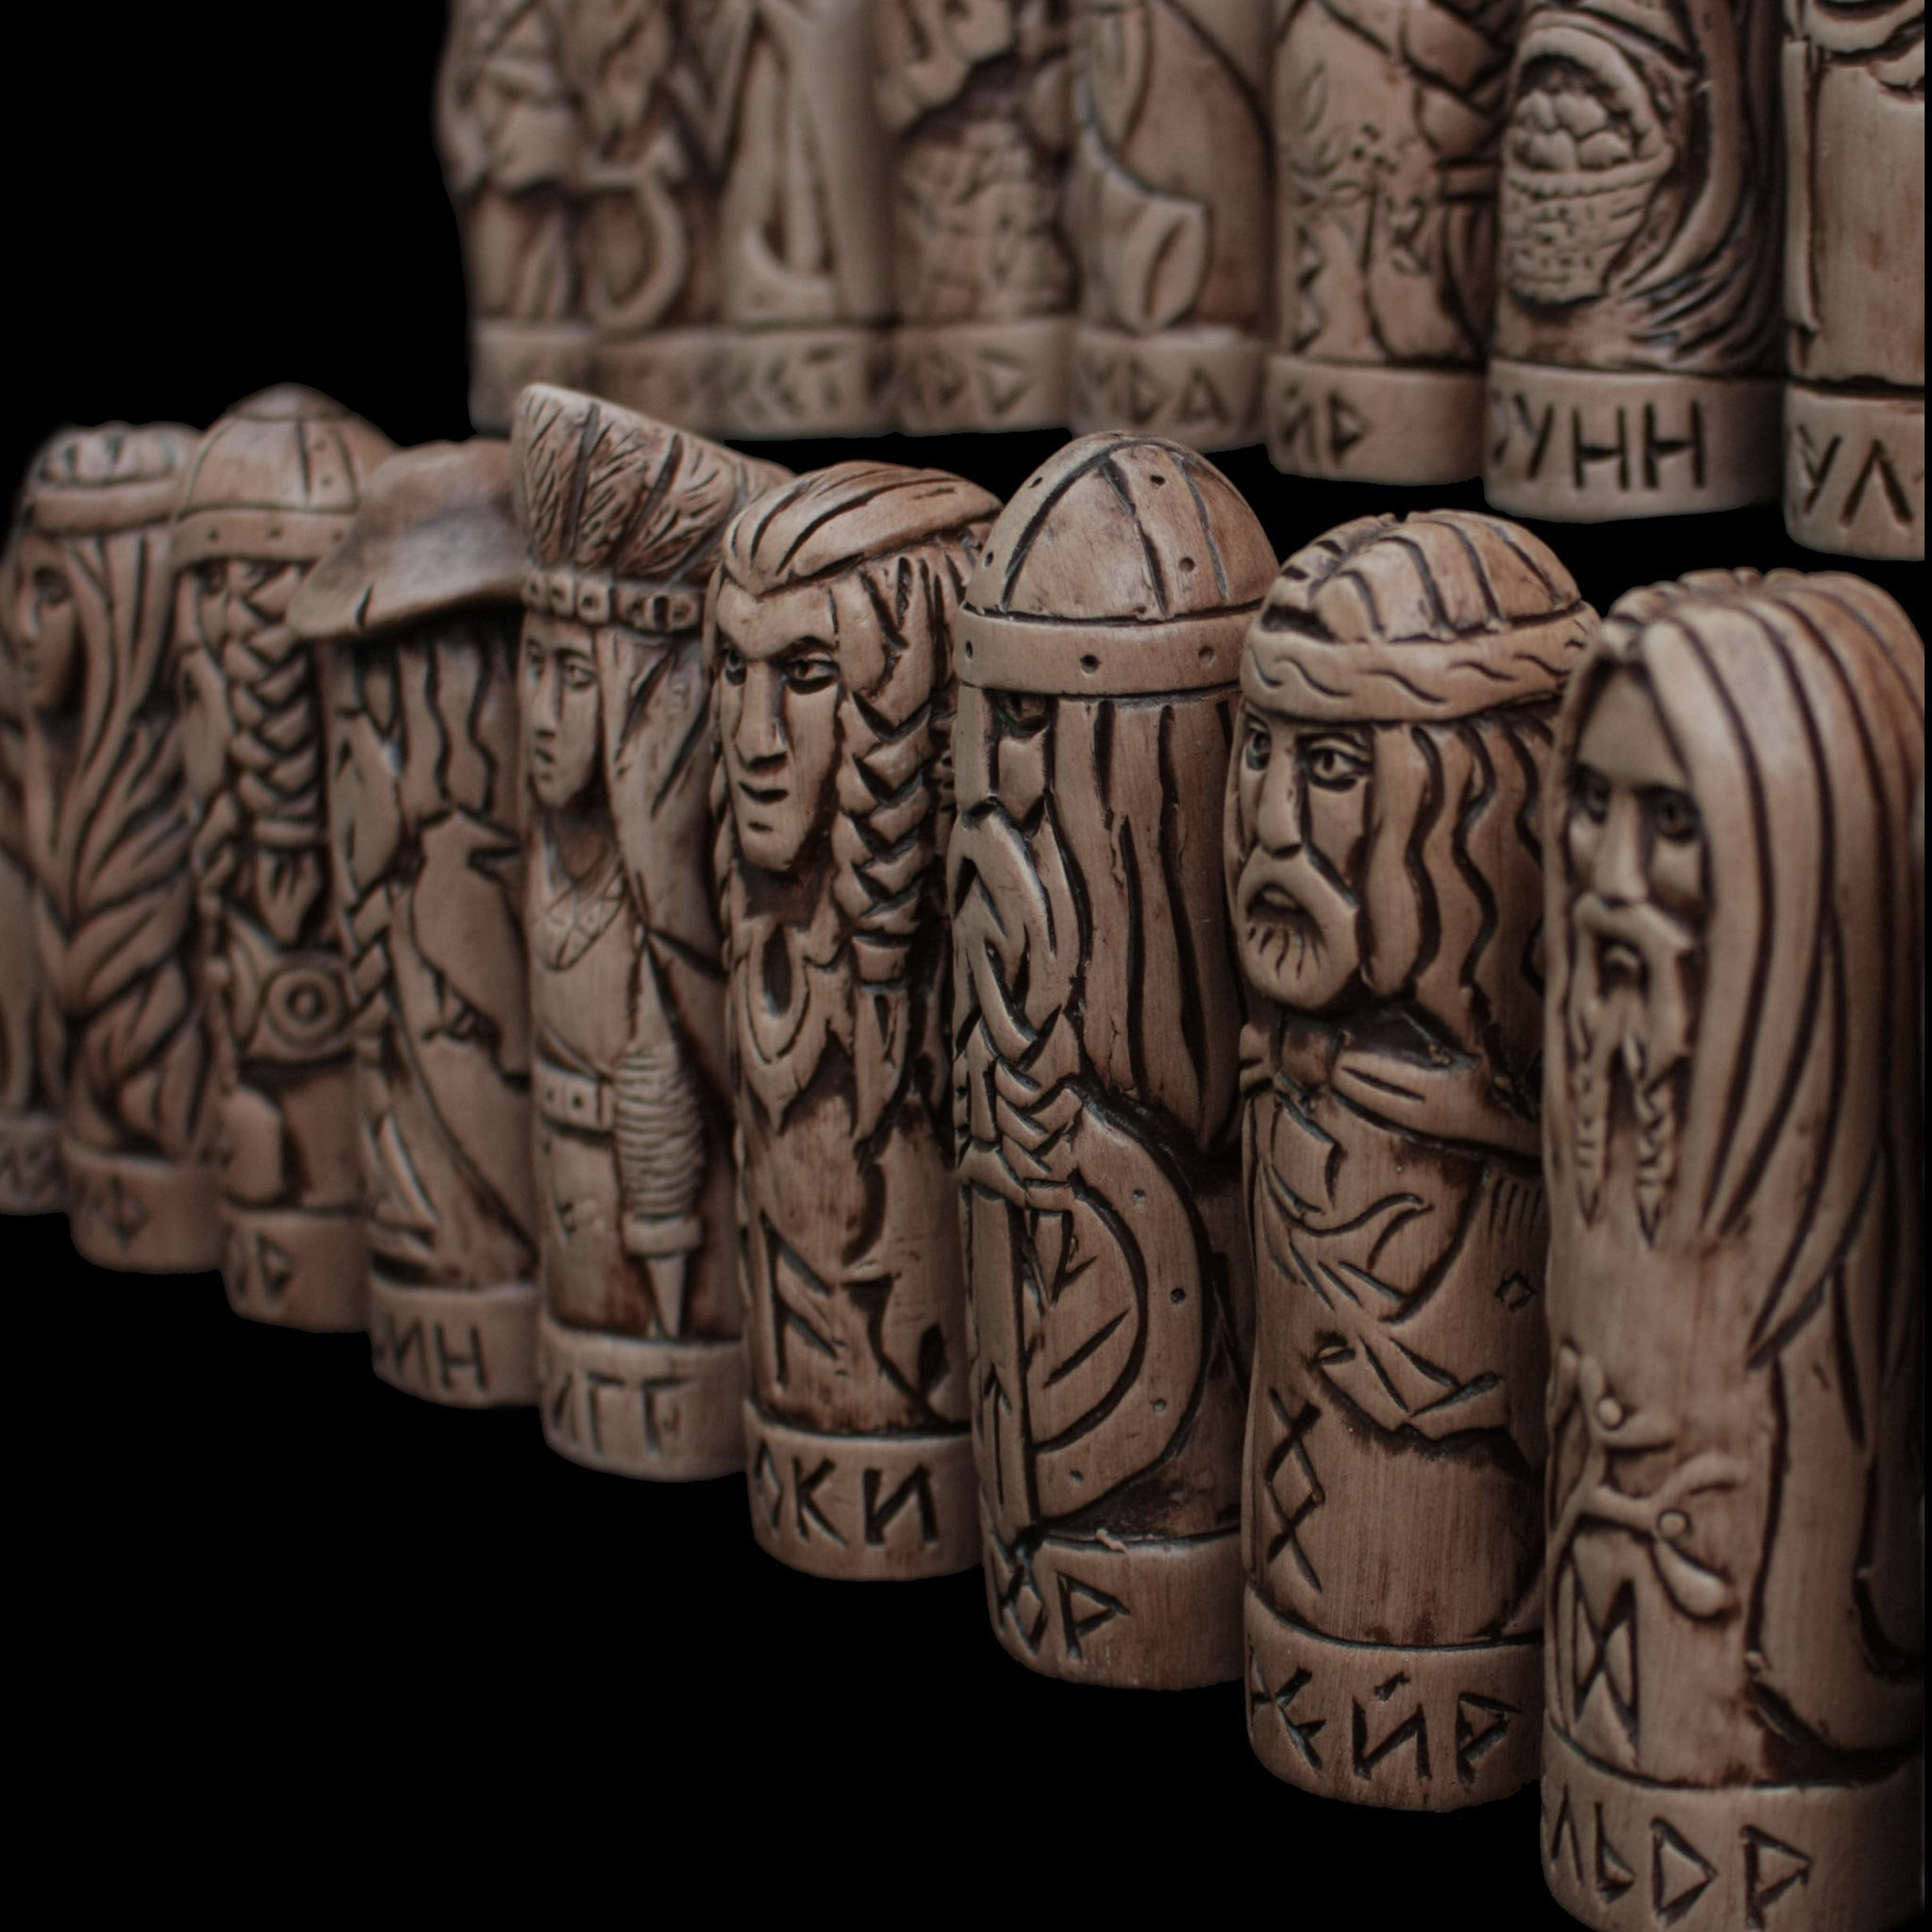 Hand-Crafted Ceramic Norse Gods Collection